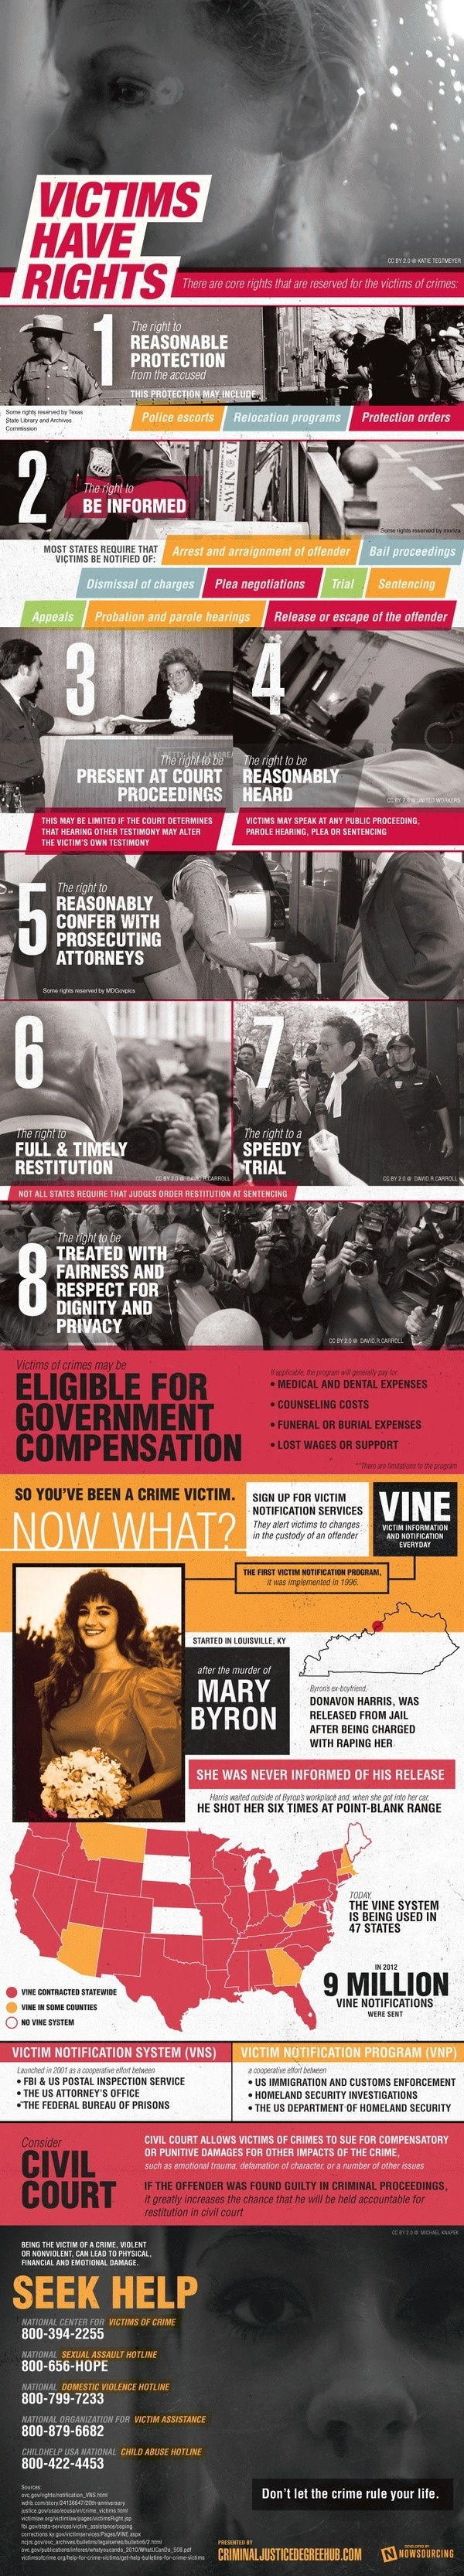 Victims Have Rights Too #rights #victims #crime